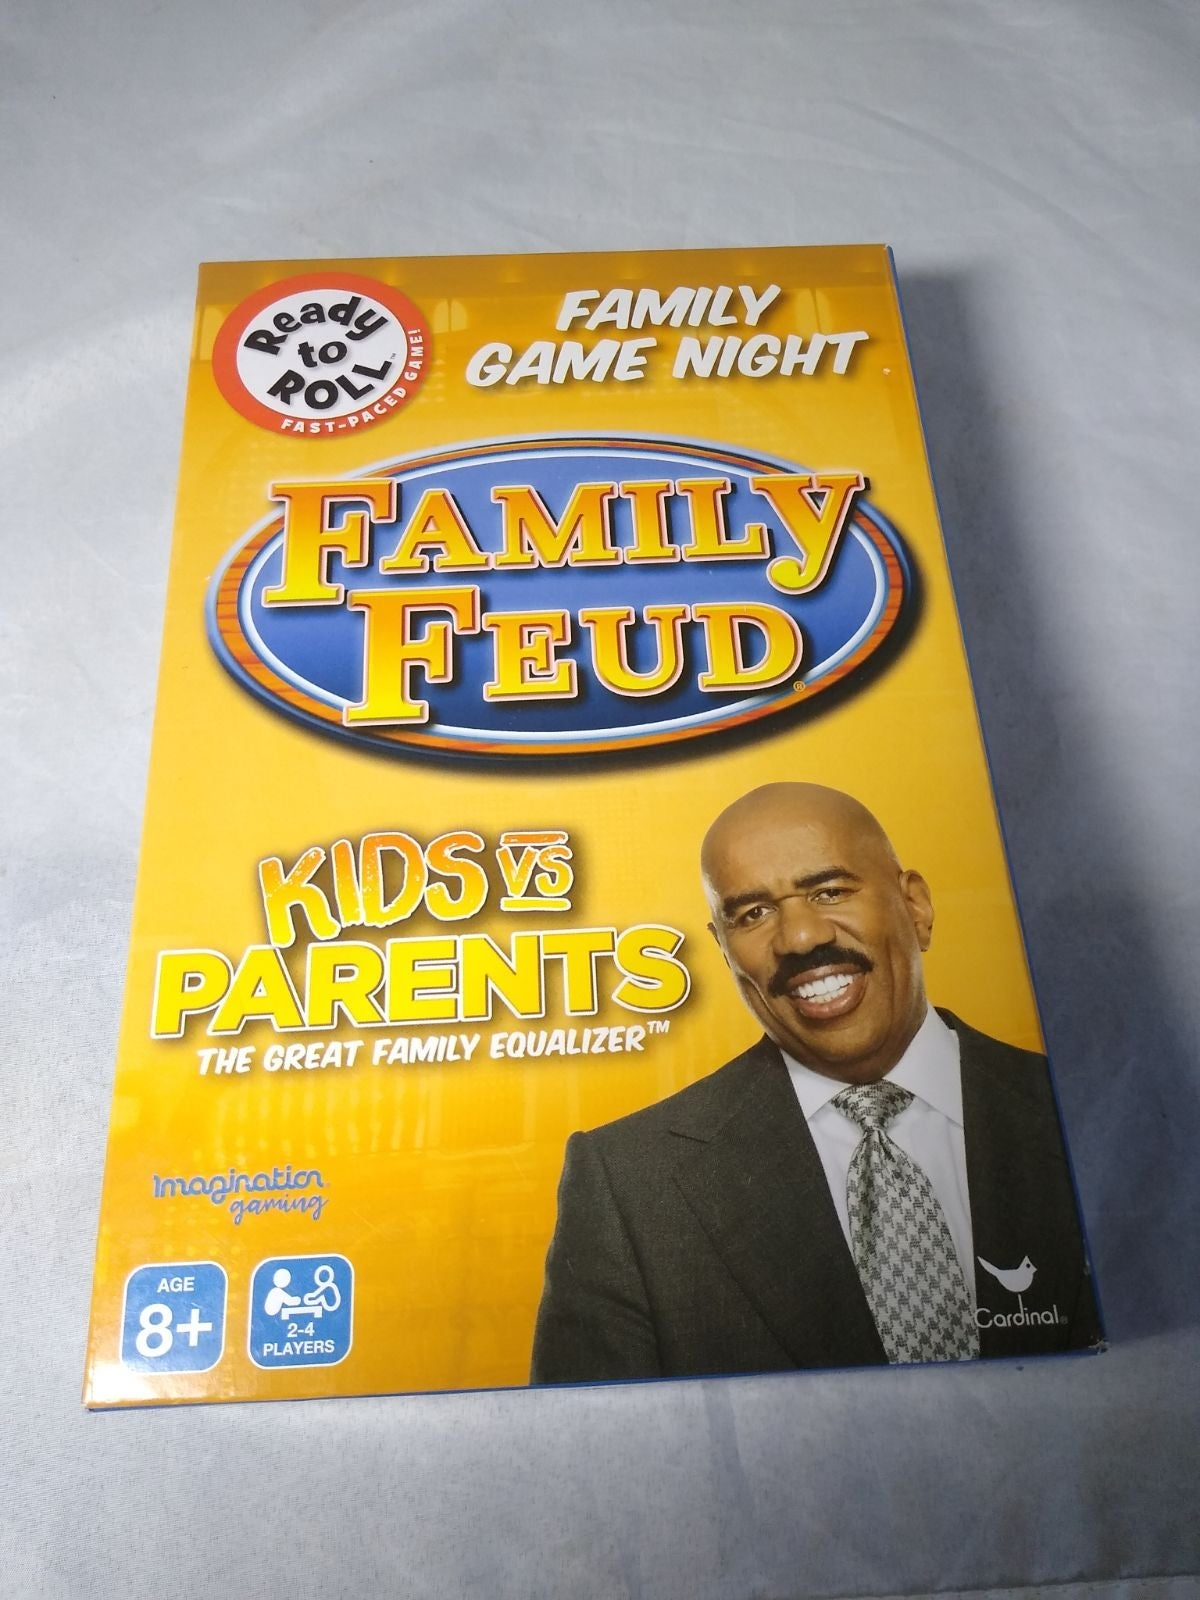 Family Feud Kid's vs Parents - The Great